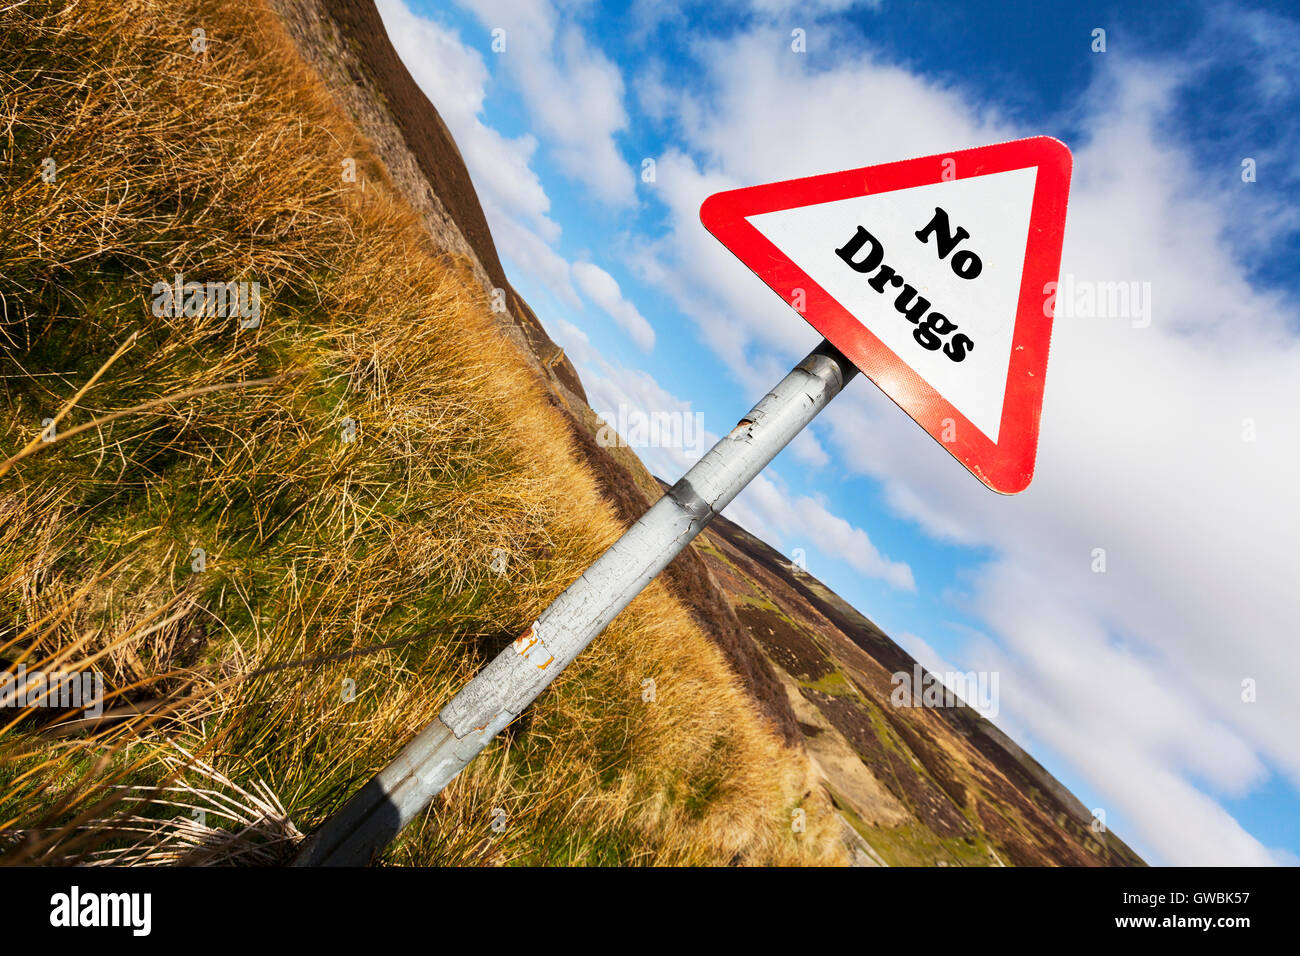 No drugs sign law warning prohibit drug taking sign health life choice warning choose drug free words antonyms antonym - Stock Image